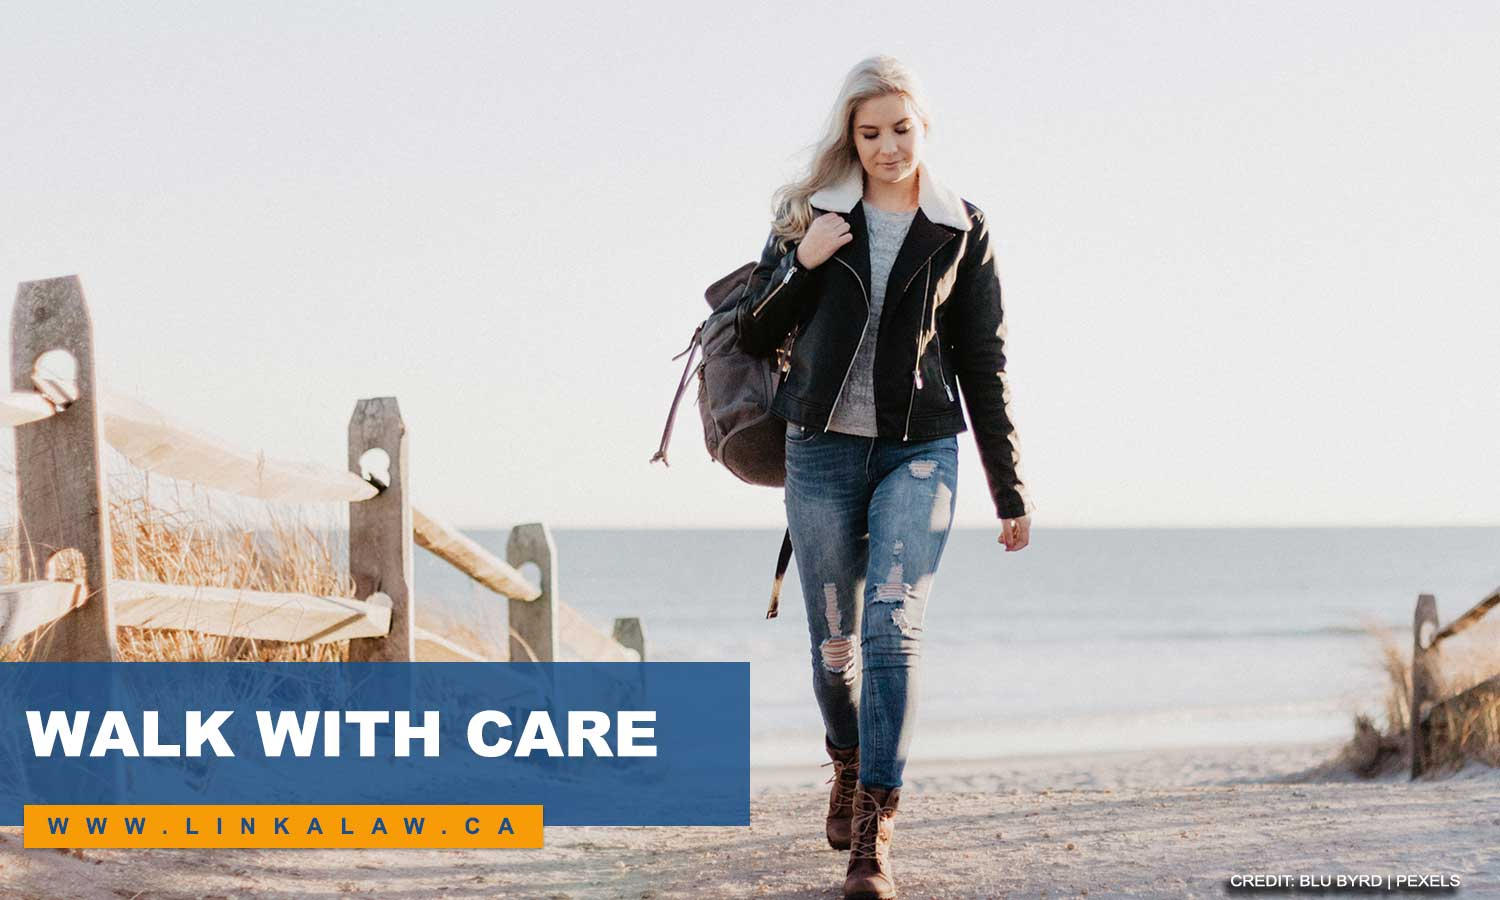 Walk with care